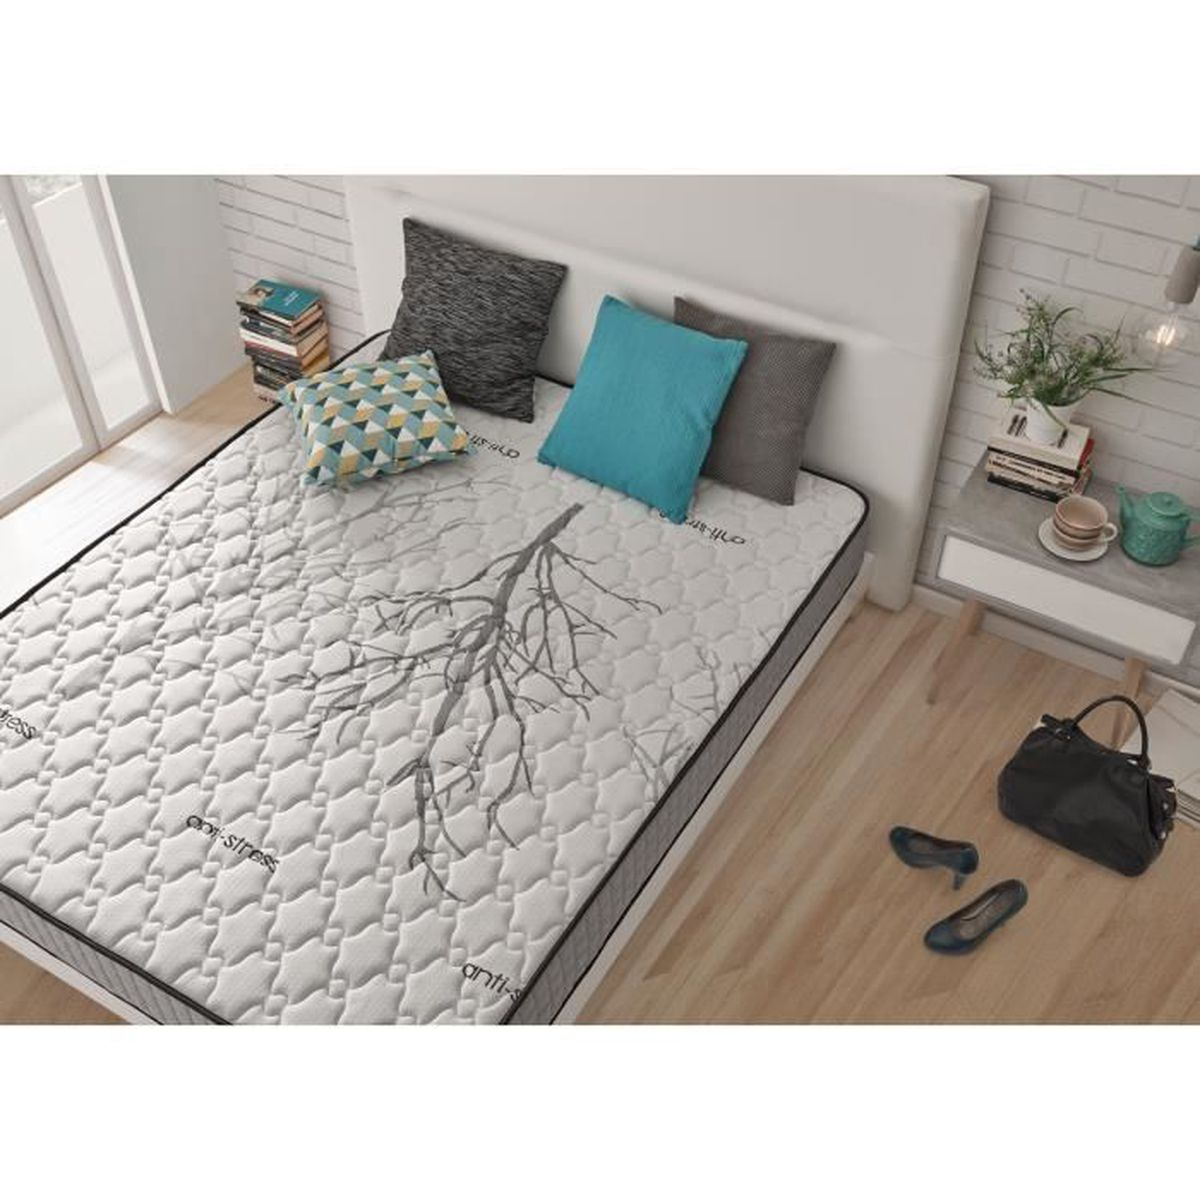 matelas 80 x 190 achat vente pas cher. Black Bedroom Furniture Sets. Home Design Ideas